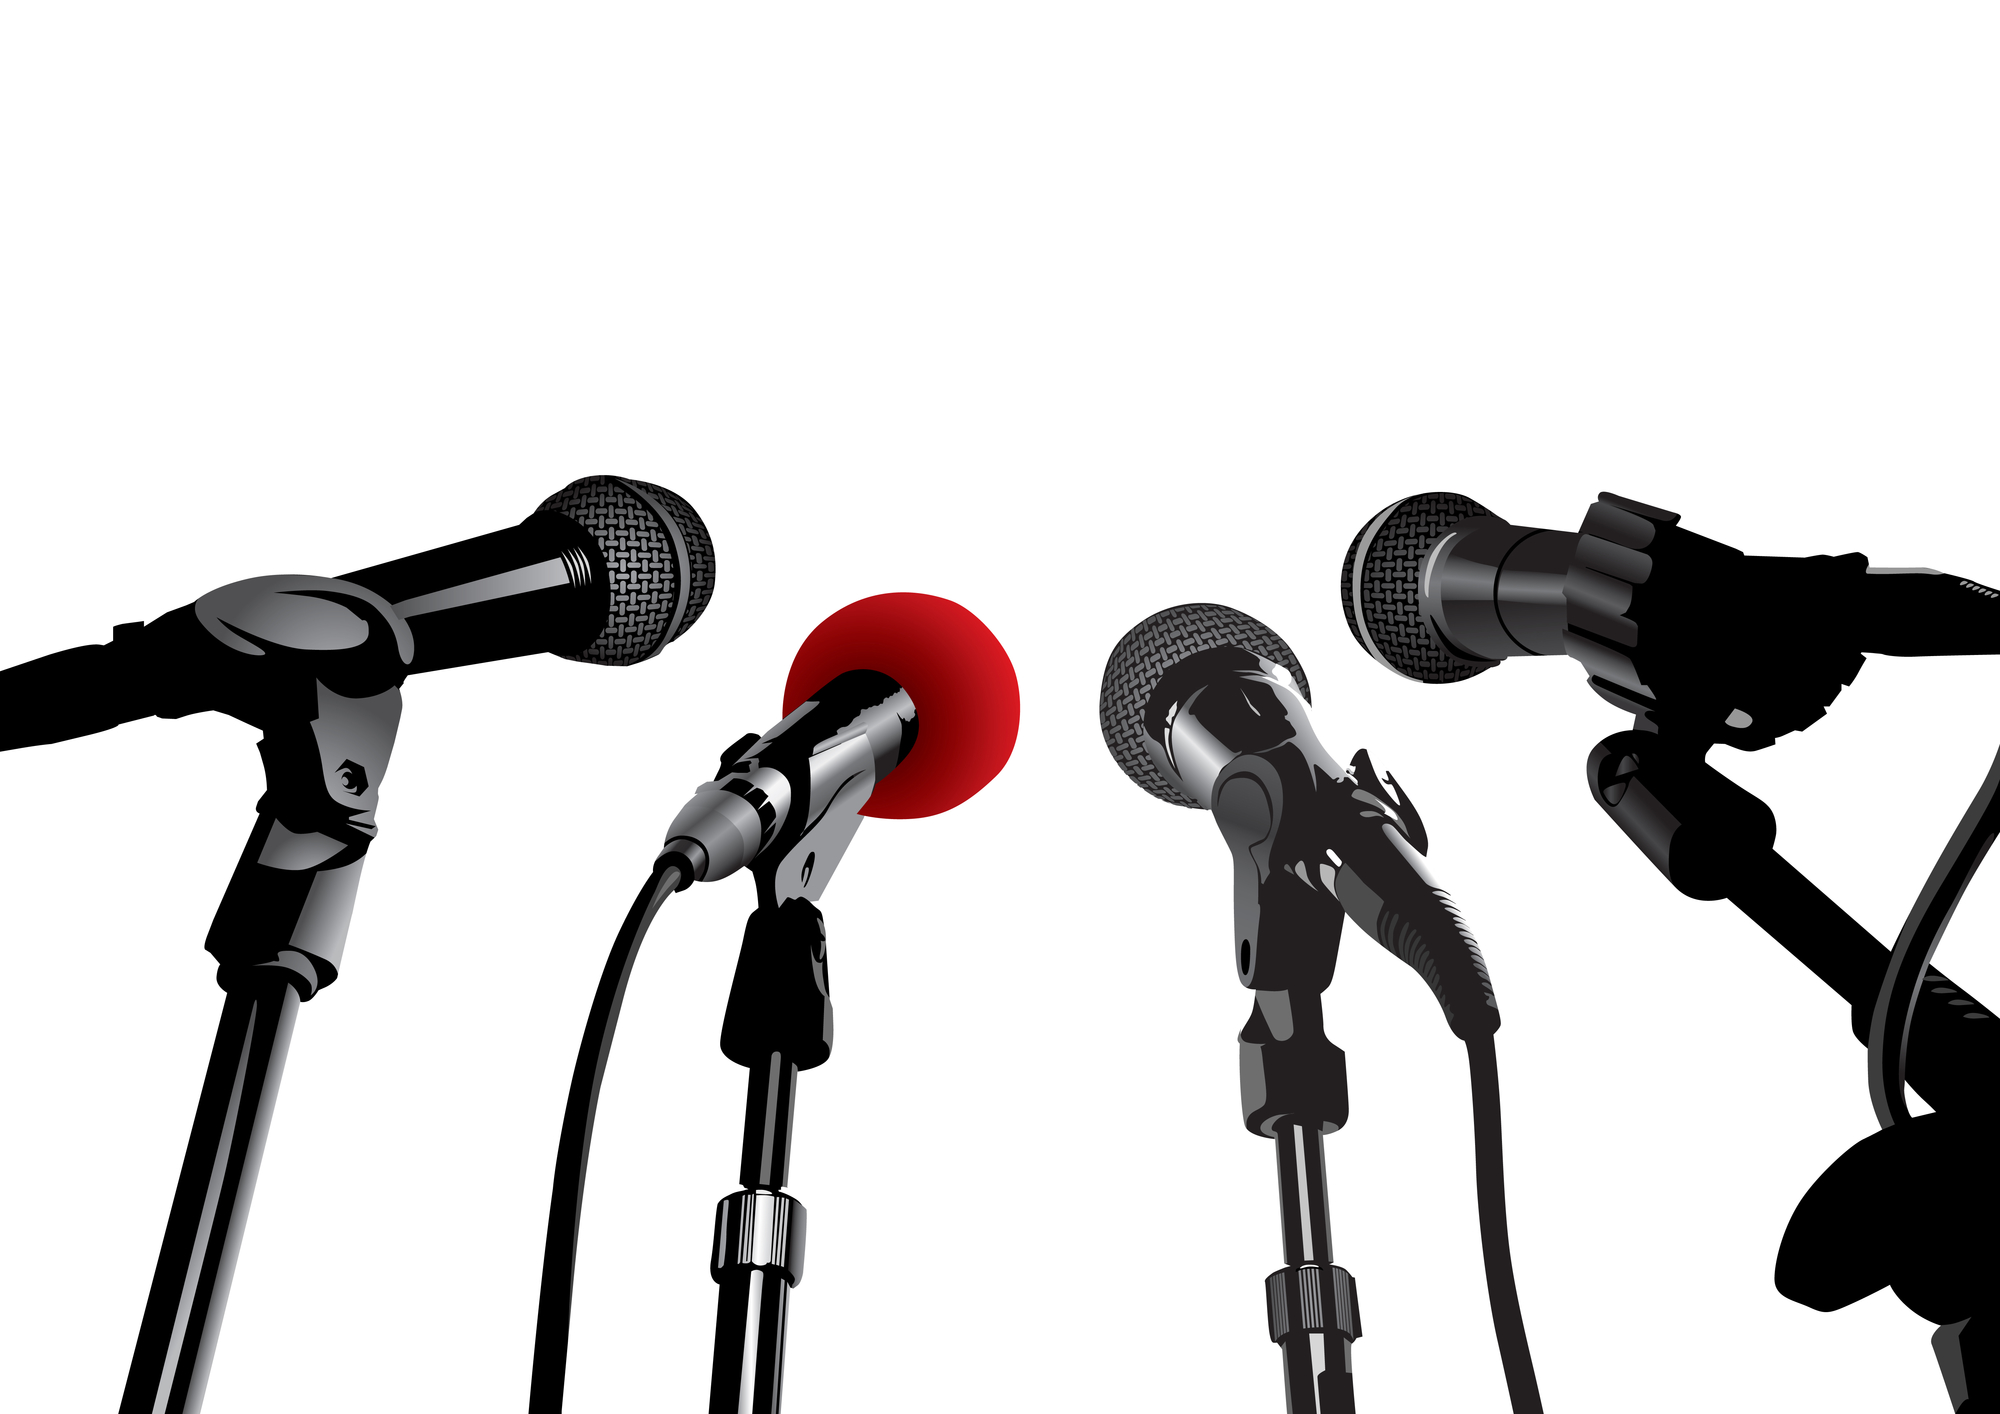 Four microphones facing each other against a white background